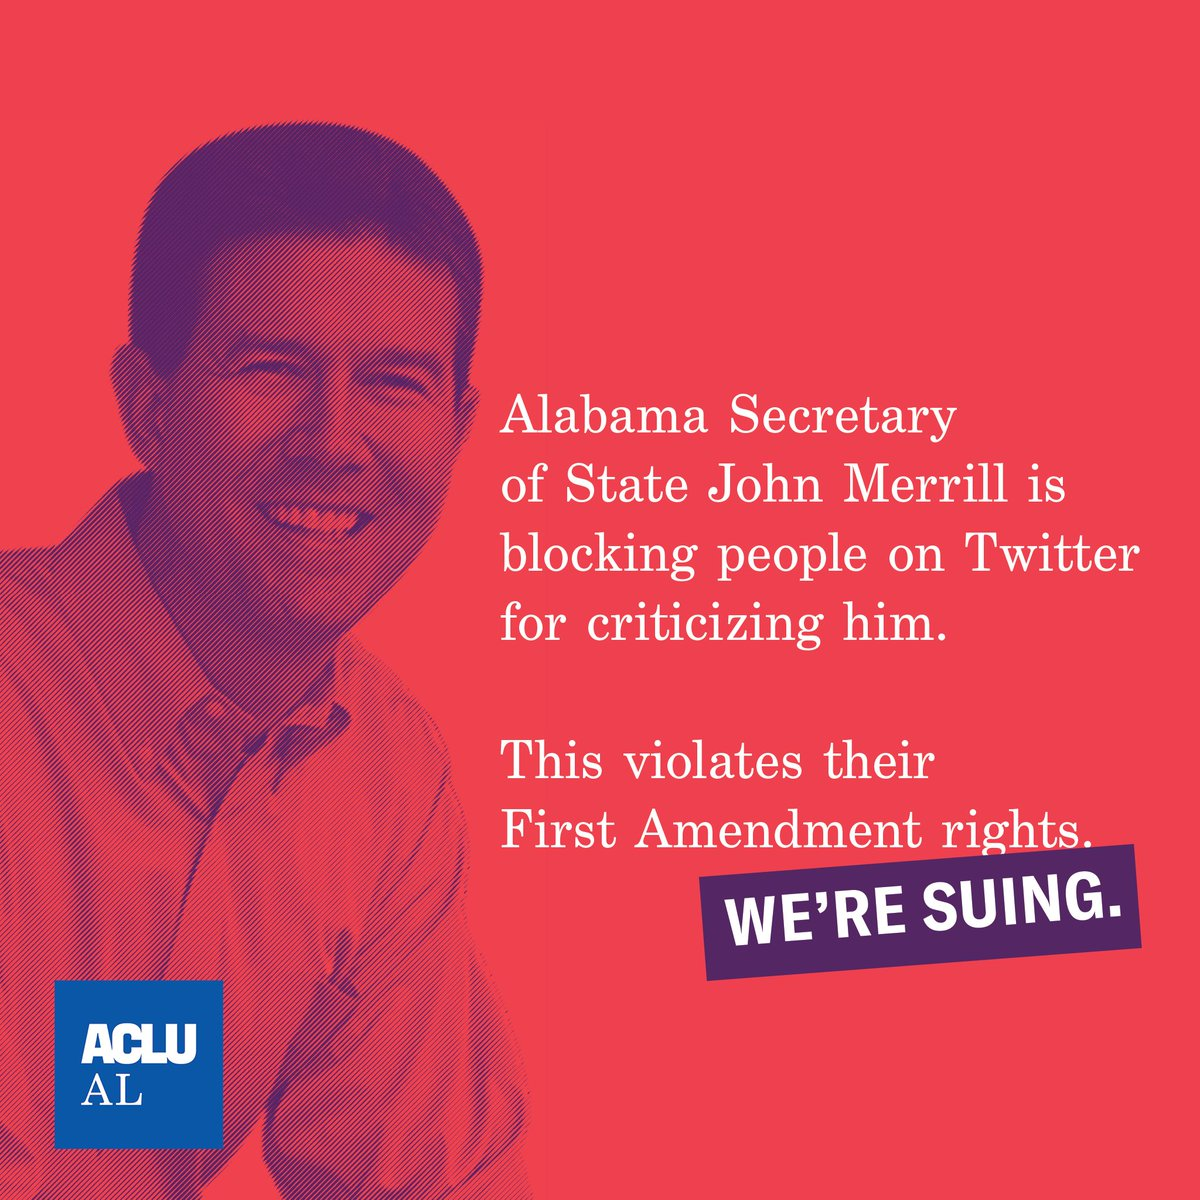 BREAKING: The ACLU of Alabama filed a lawsuit today on behalf of three Alabama citizens challenging @alasecofstate @JohnHMerrill for blocking them on Twitter and violating the First Amendment. #BlockedByMerrill Read more: aclualabama.org/en/press-relea…